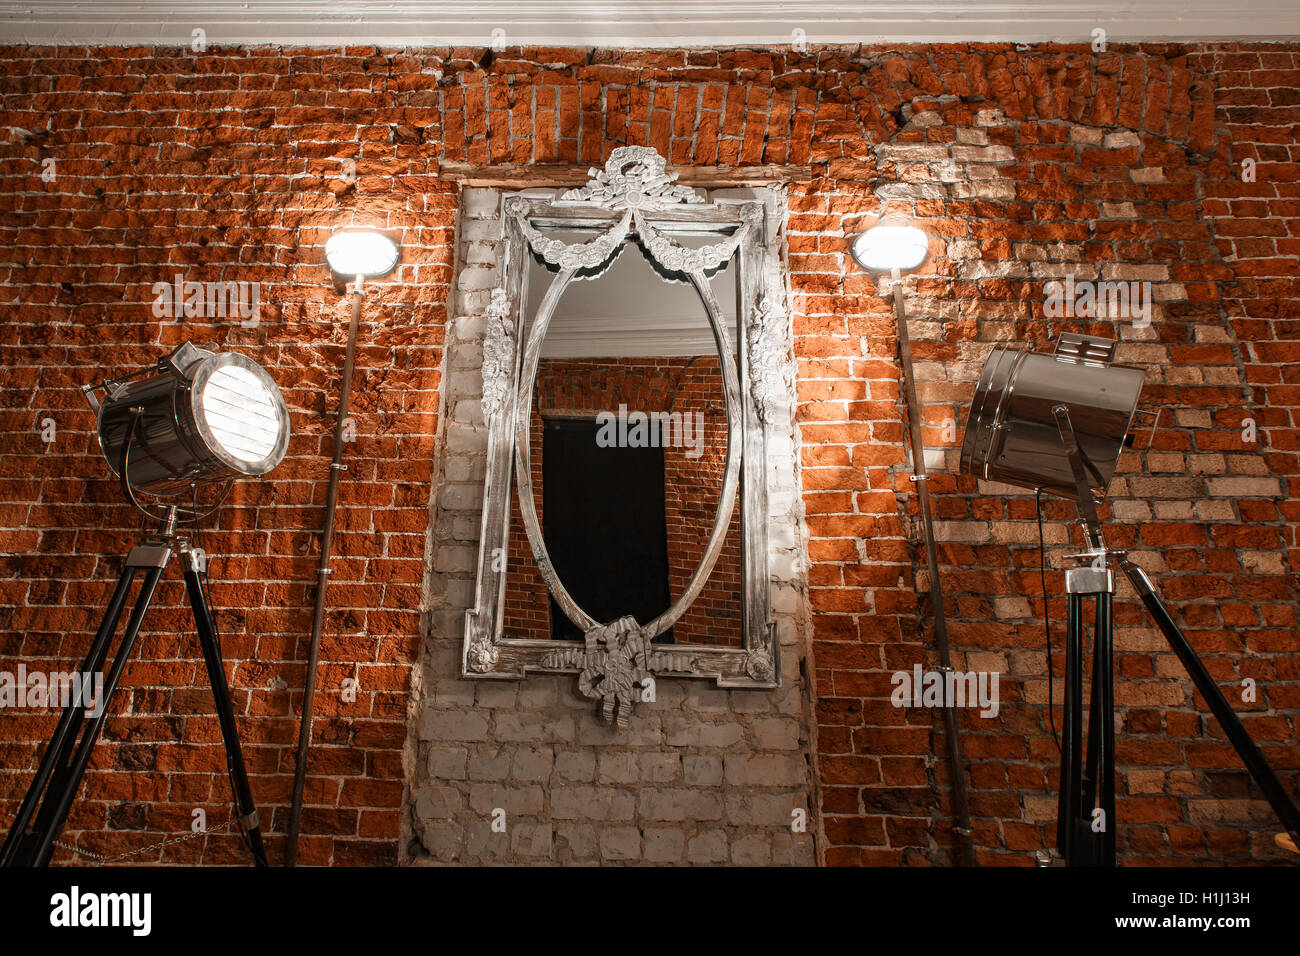 Old ornate frames on mirror glas hanging on a brick wall. - Stock Image